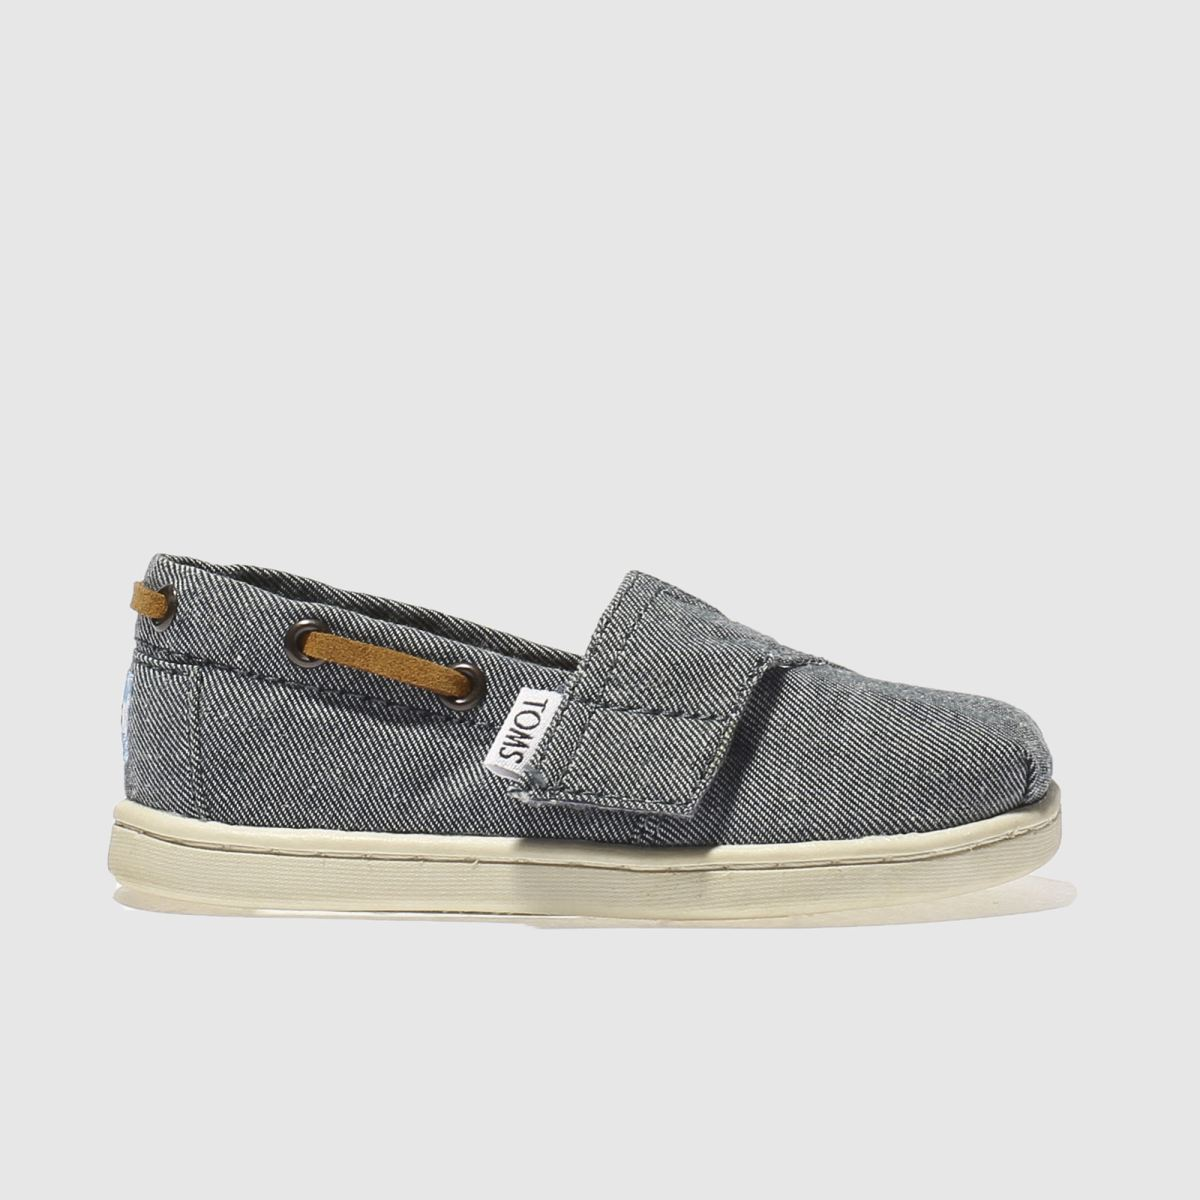 toms navy bimini Boys Toddler Shoes